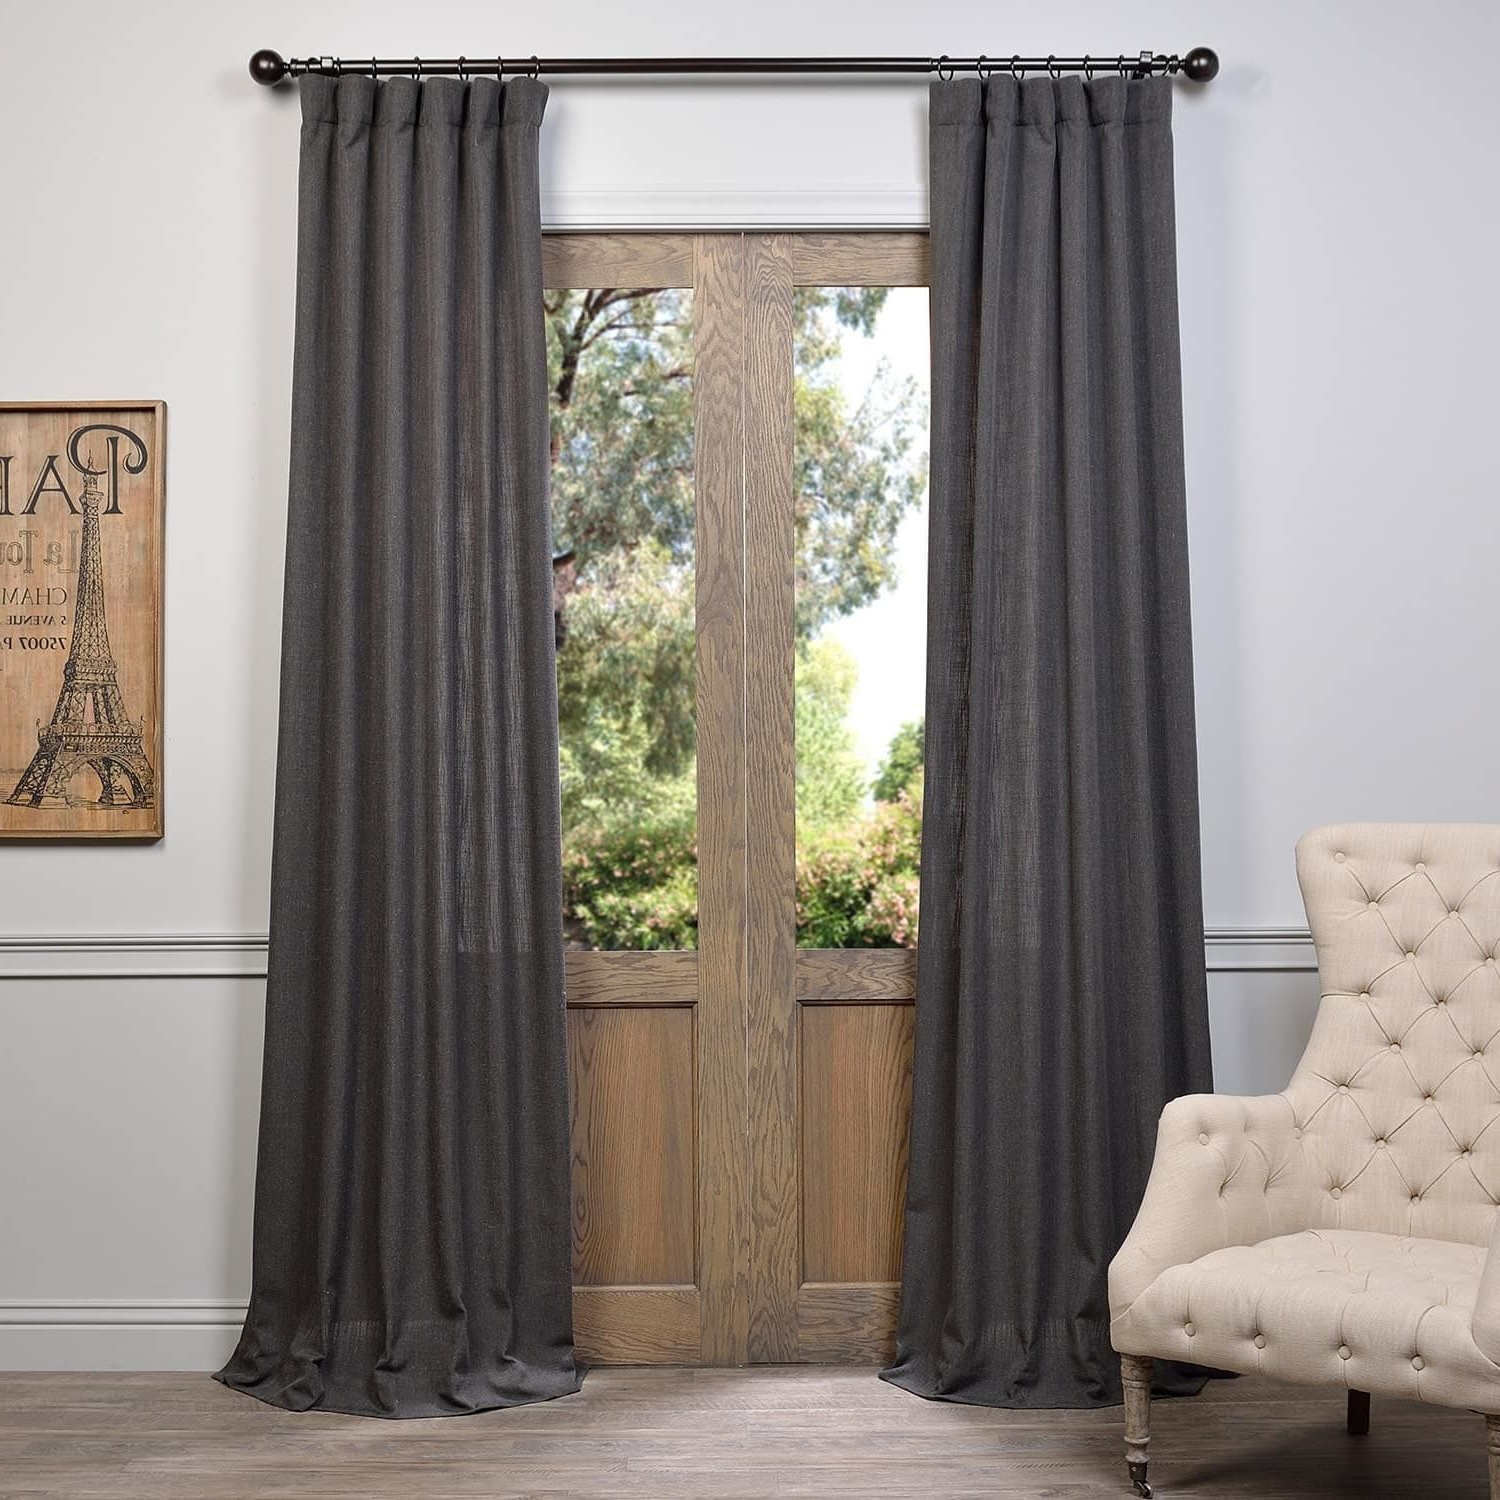 Harmony In Most Recently Released Heavy Faux Linen Single Curtain Panels (View 10 of 20)